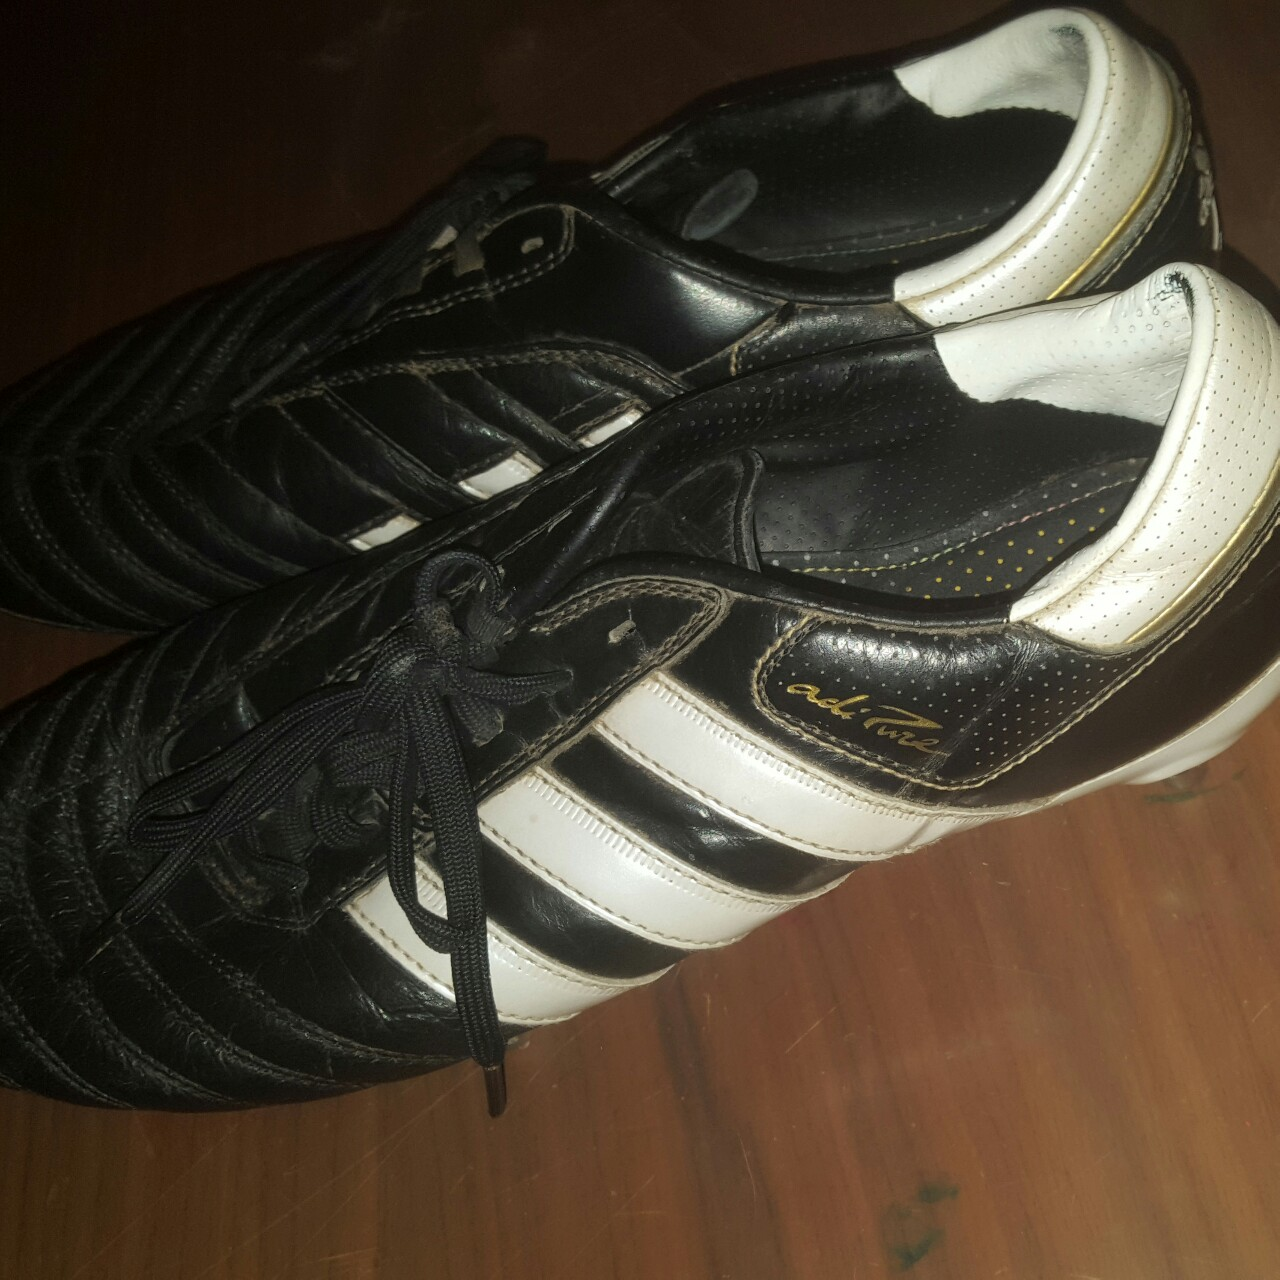 Adidas adipure size 9 football boots in great    - Depop